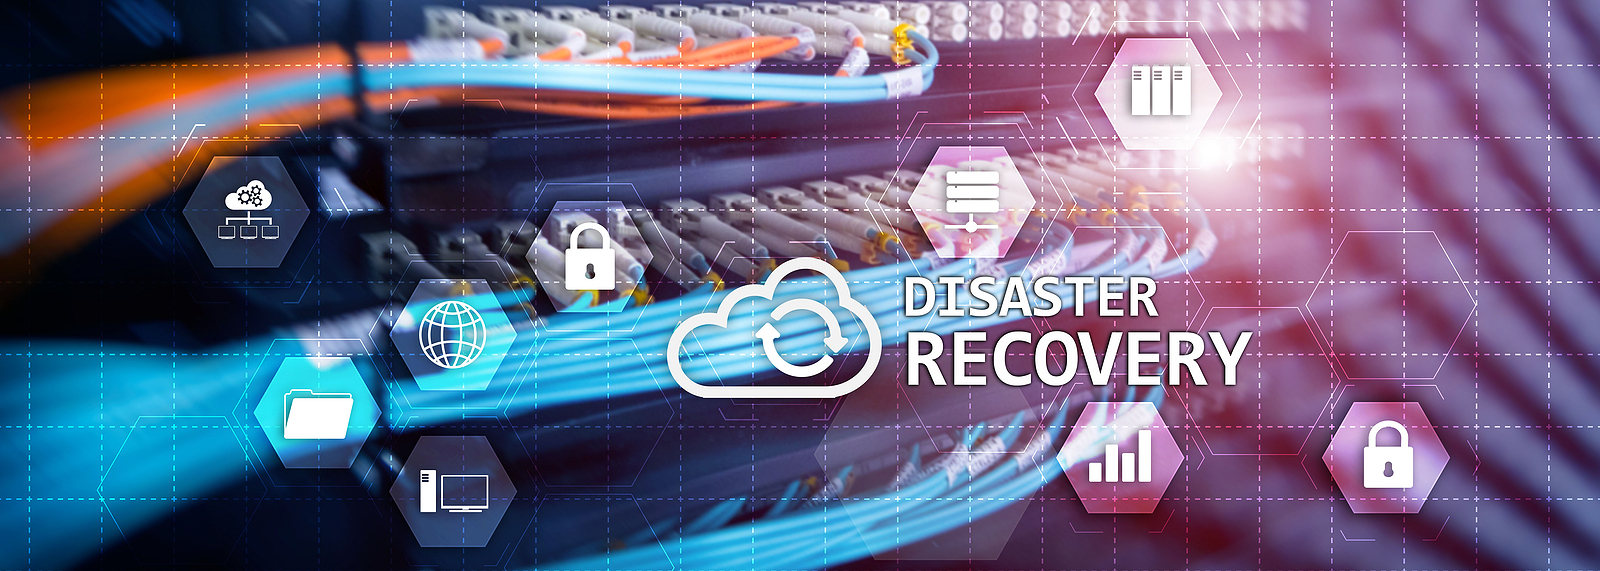 Disaster Recovery Plan for your corporation. Cyber Security concept 2020.